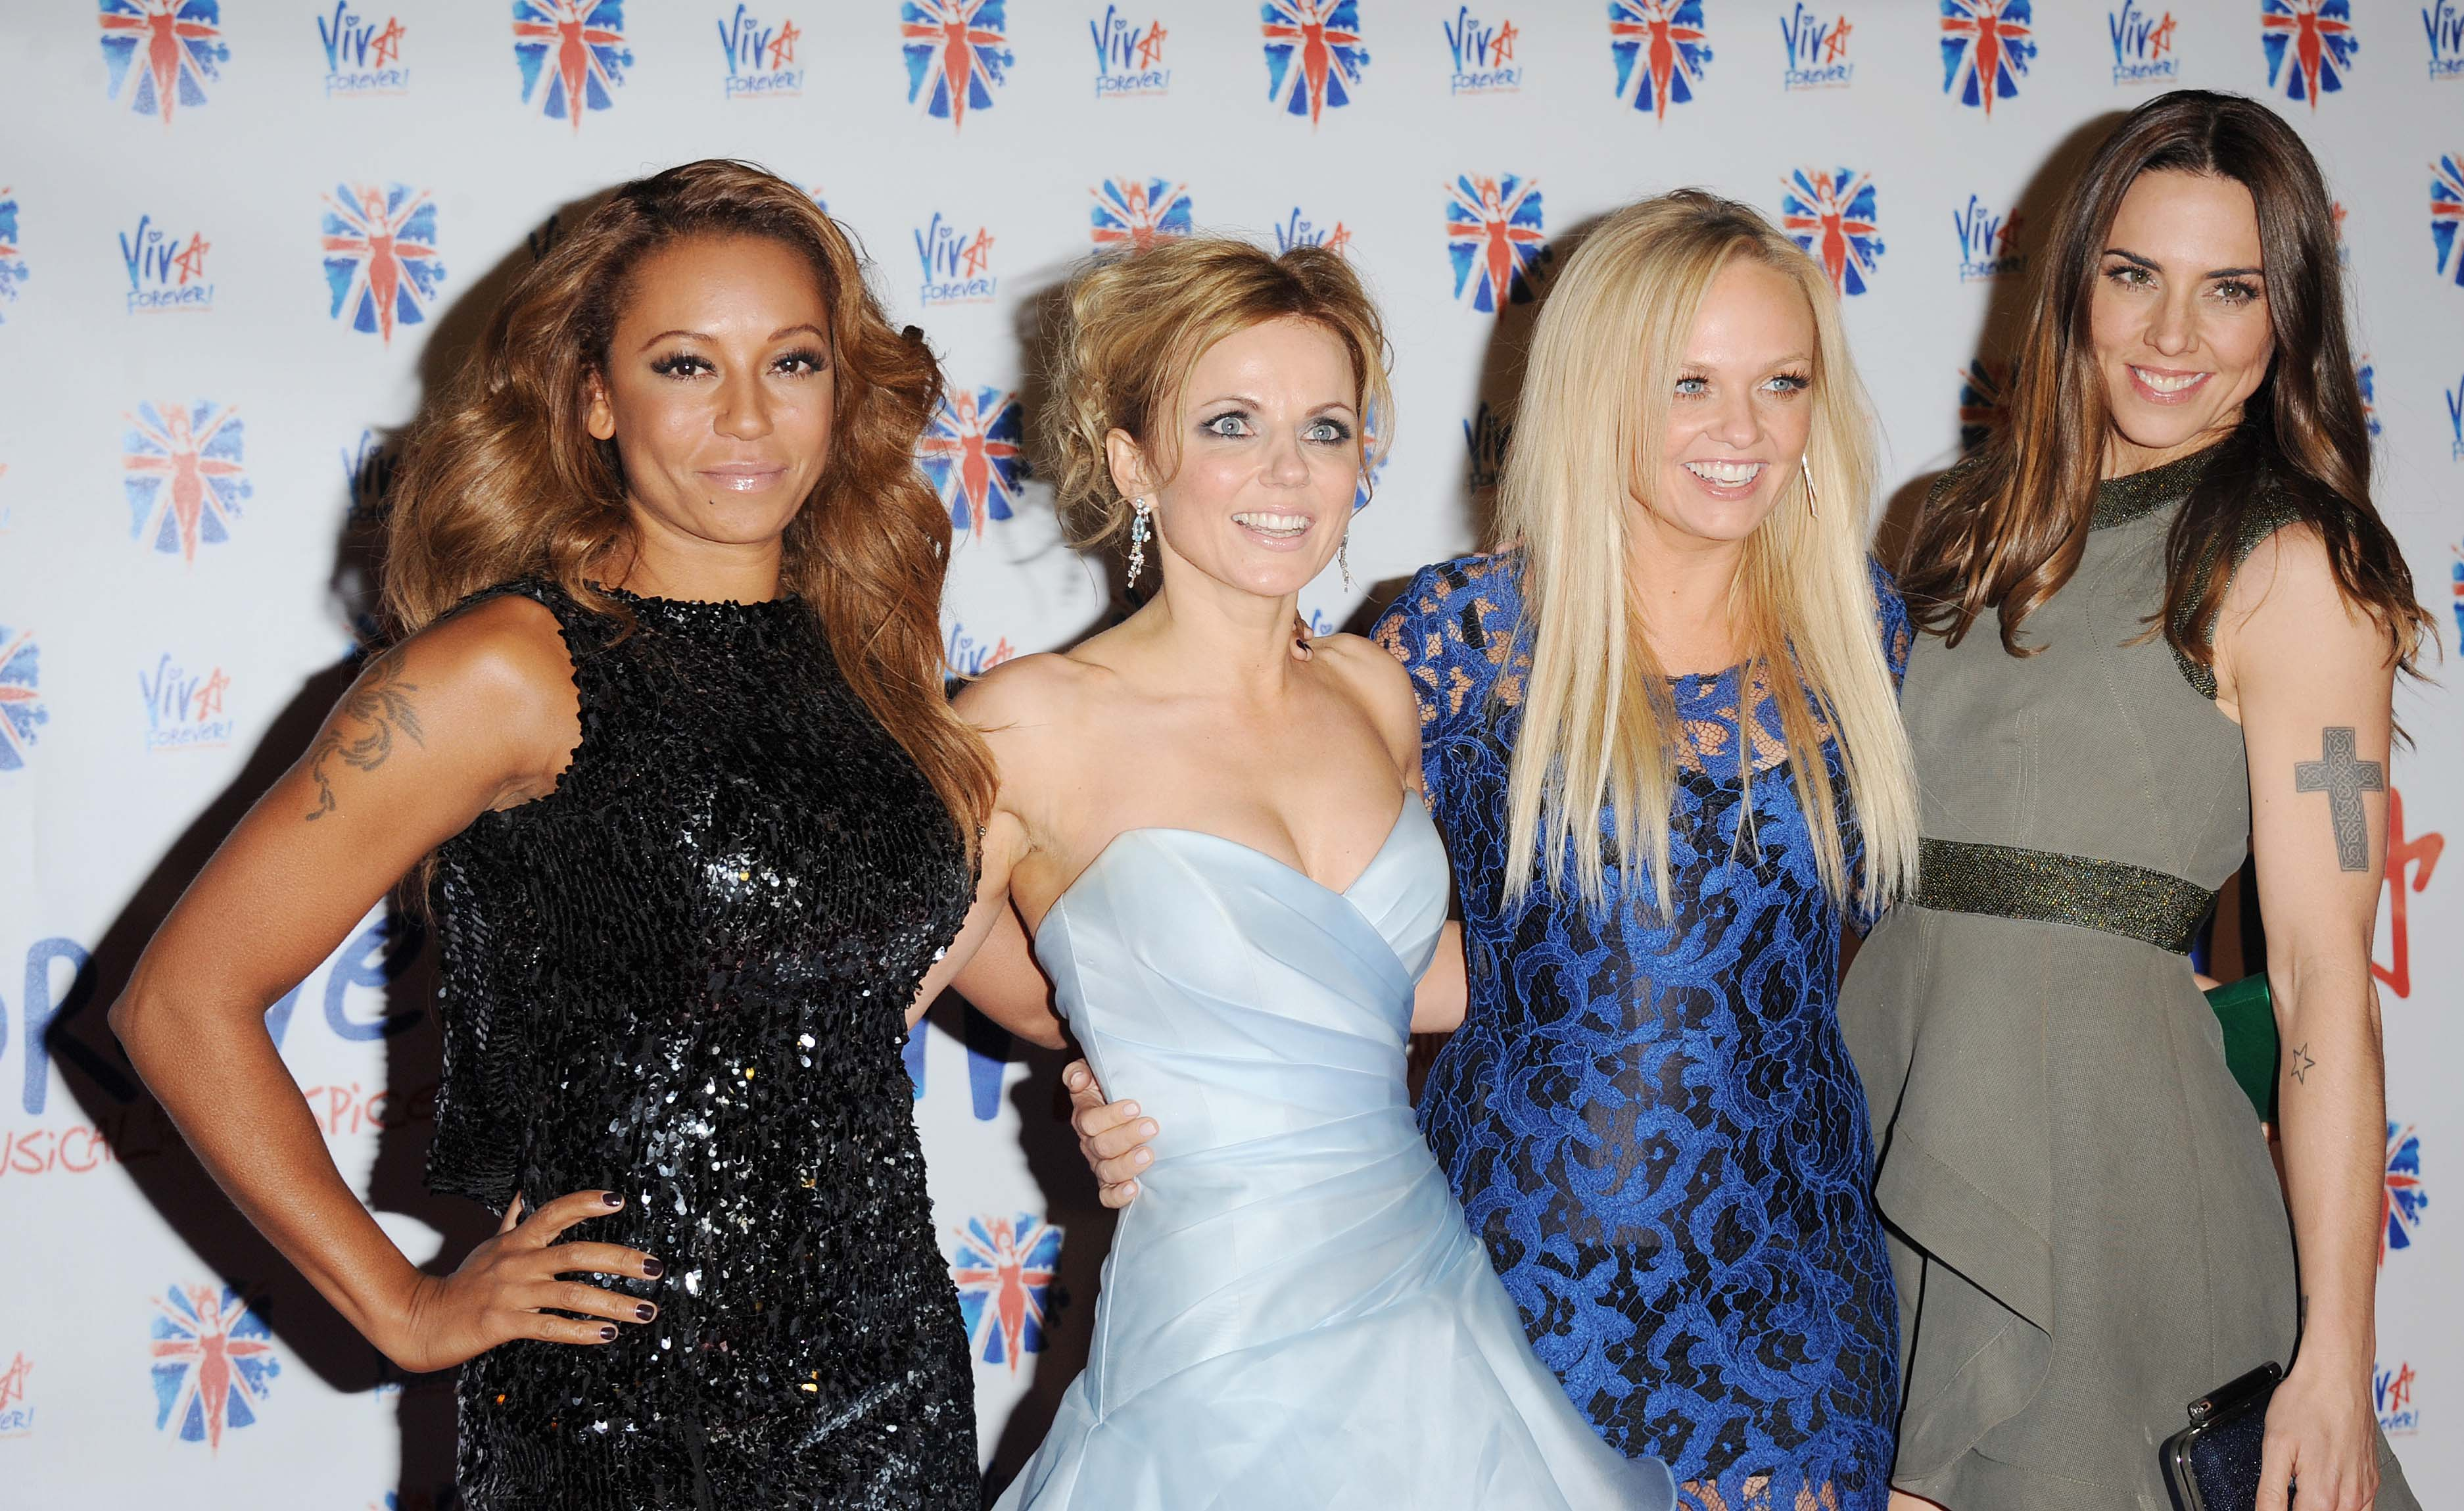 The Spice Girls are set to unite for a reunion tour in 2019